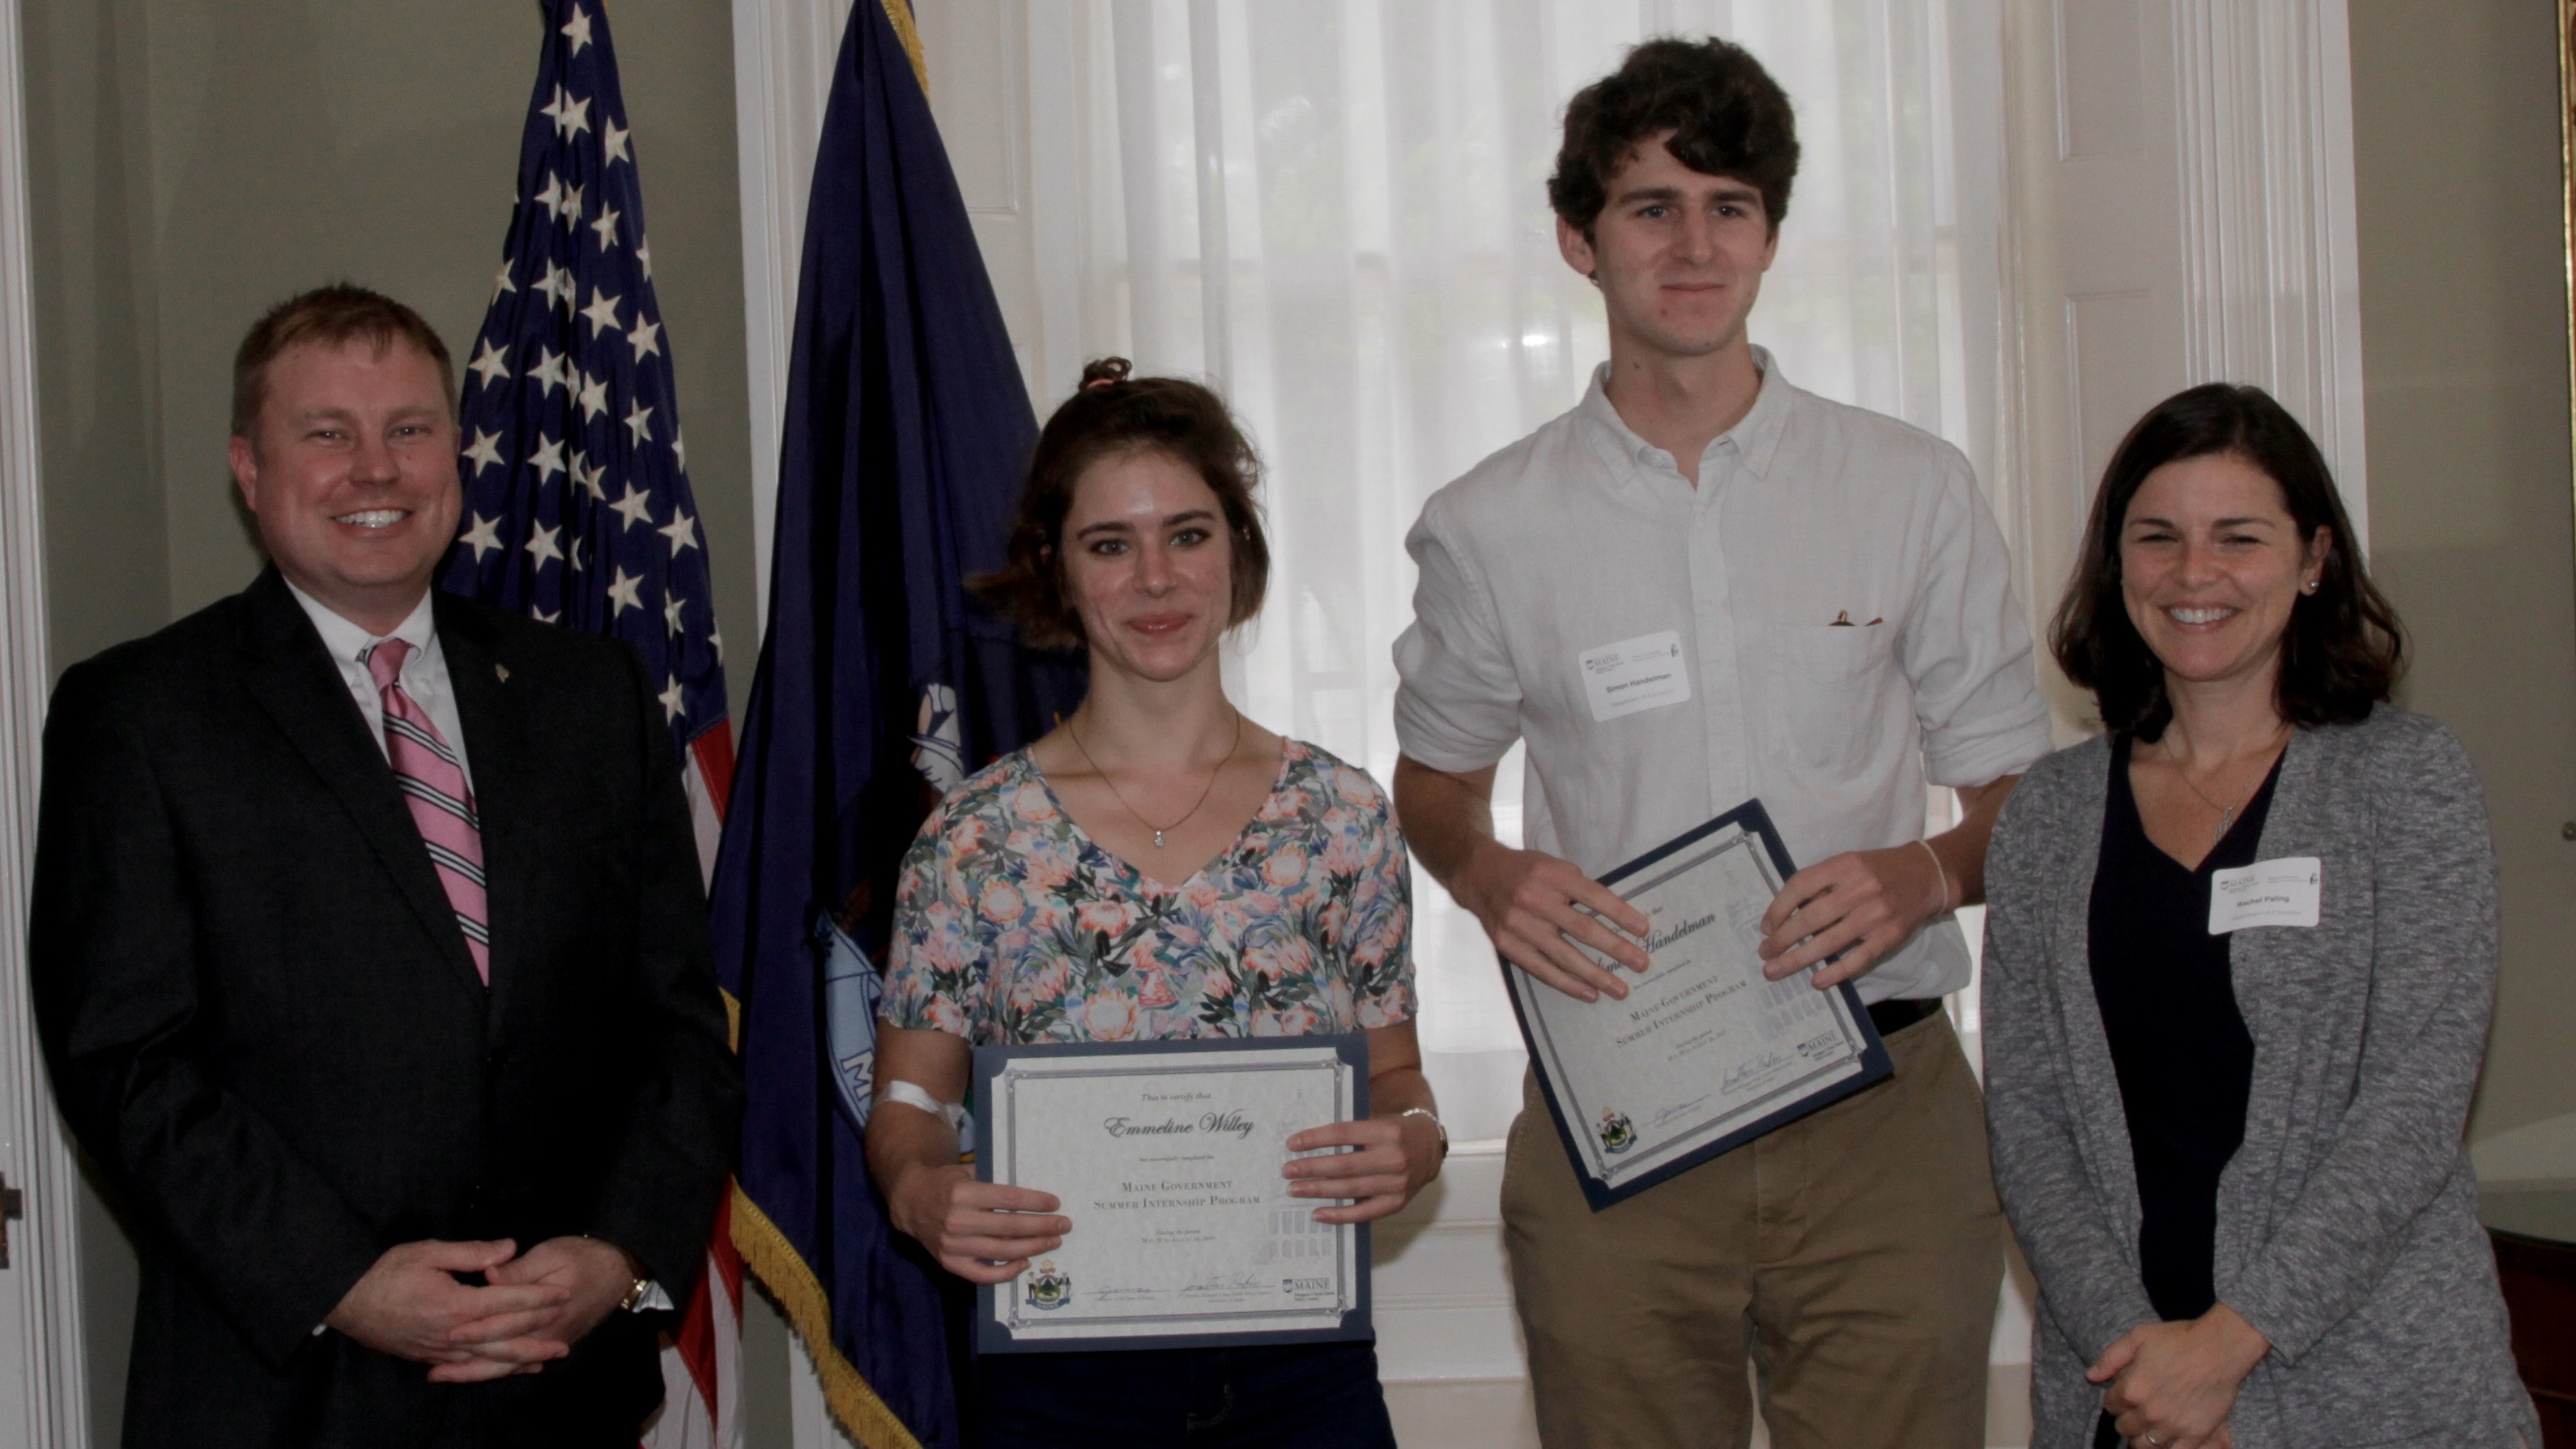 Attorney General Frey with Interns and Supervisor